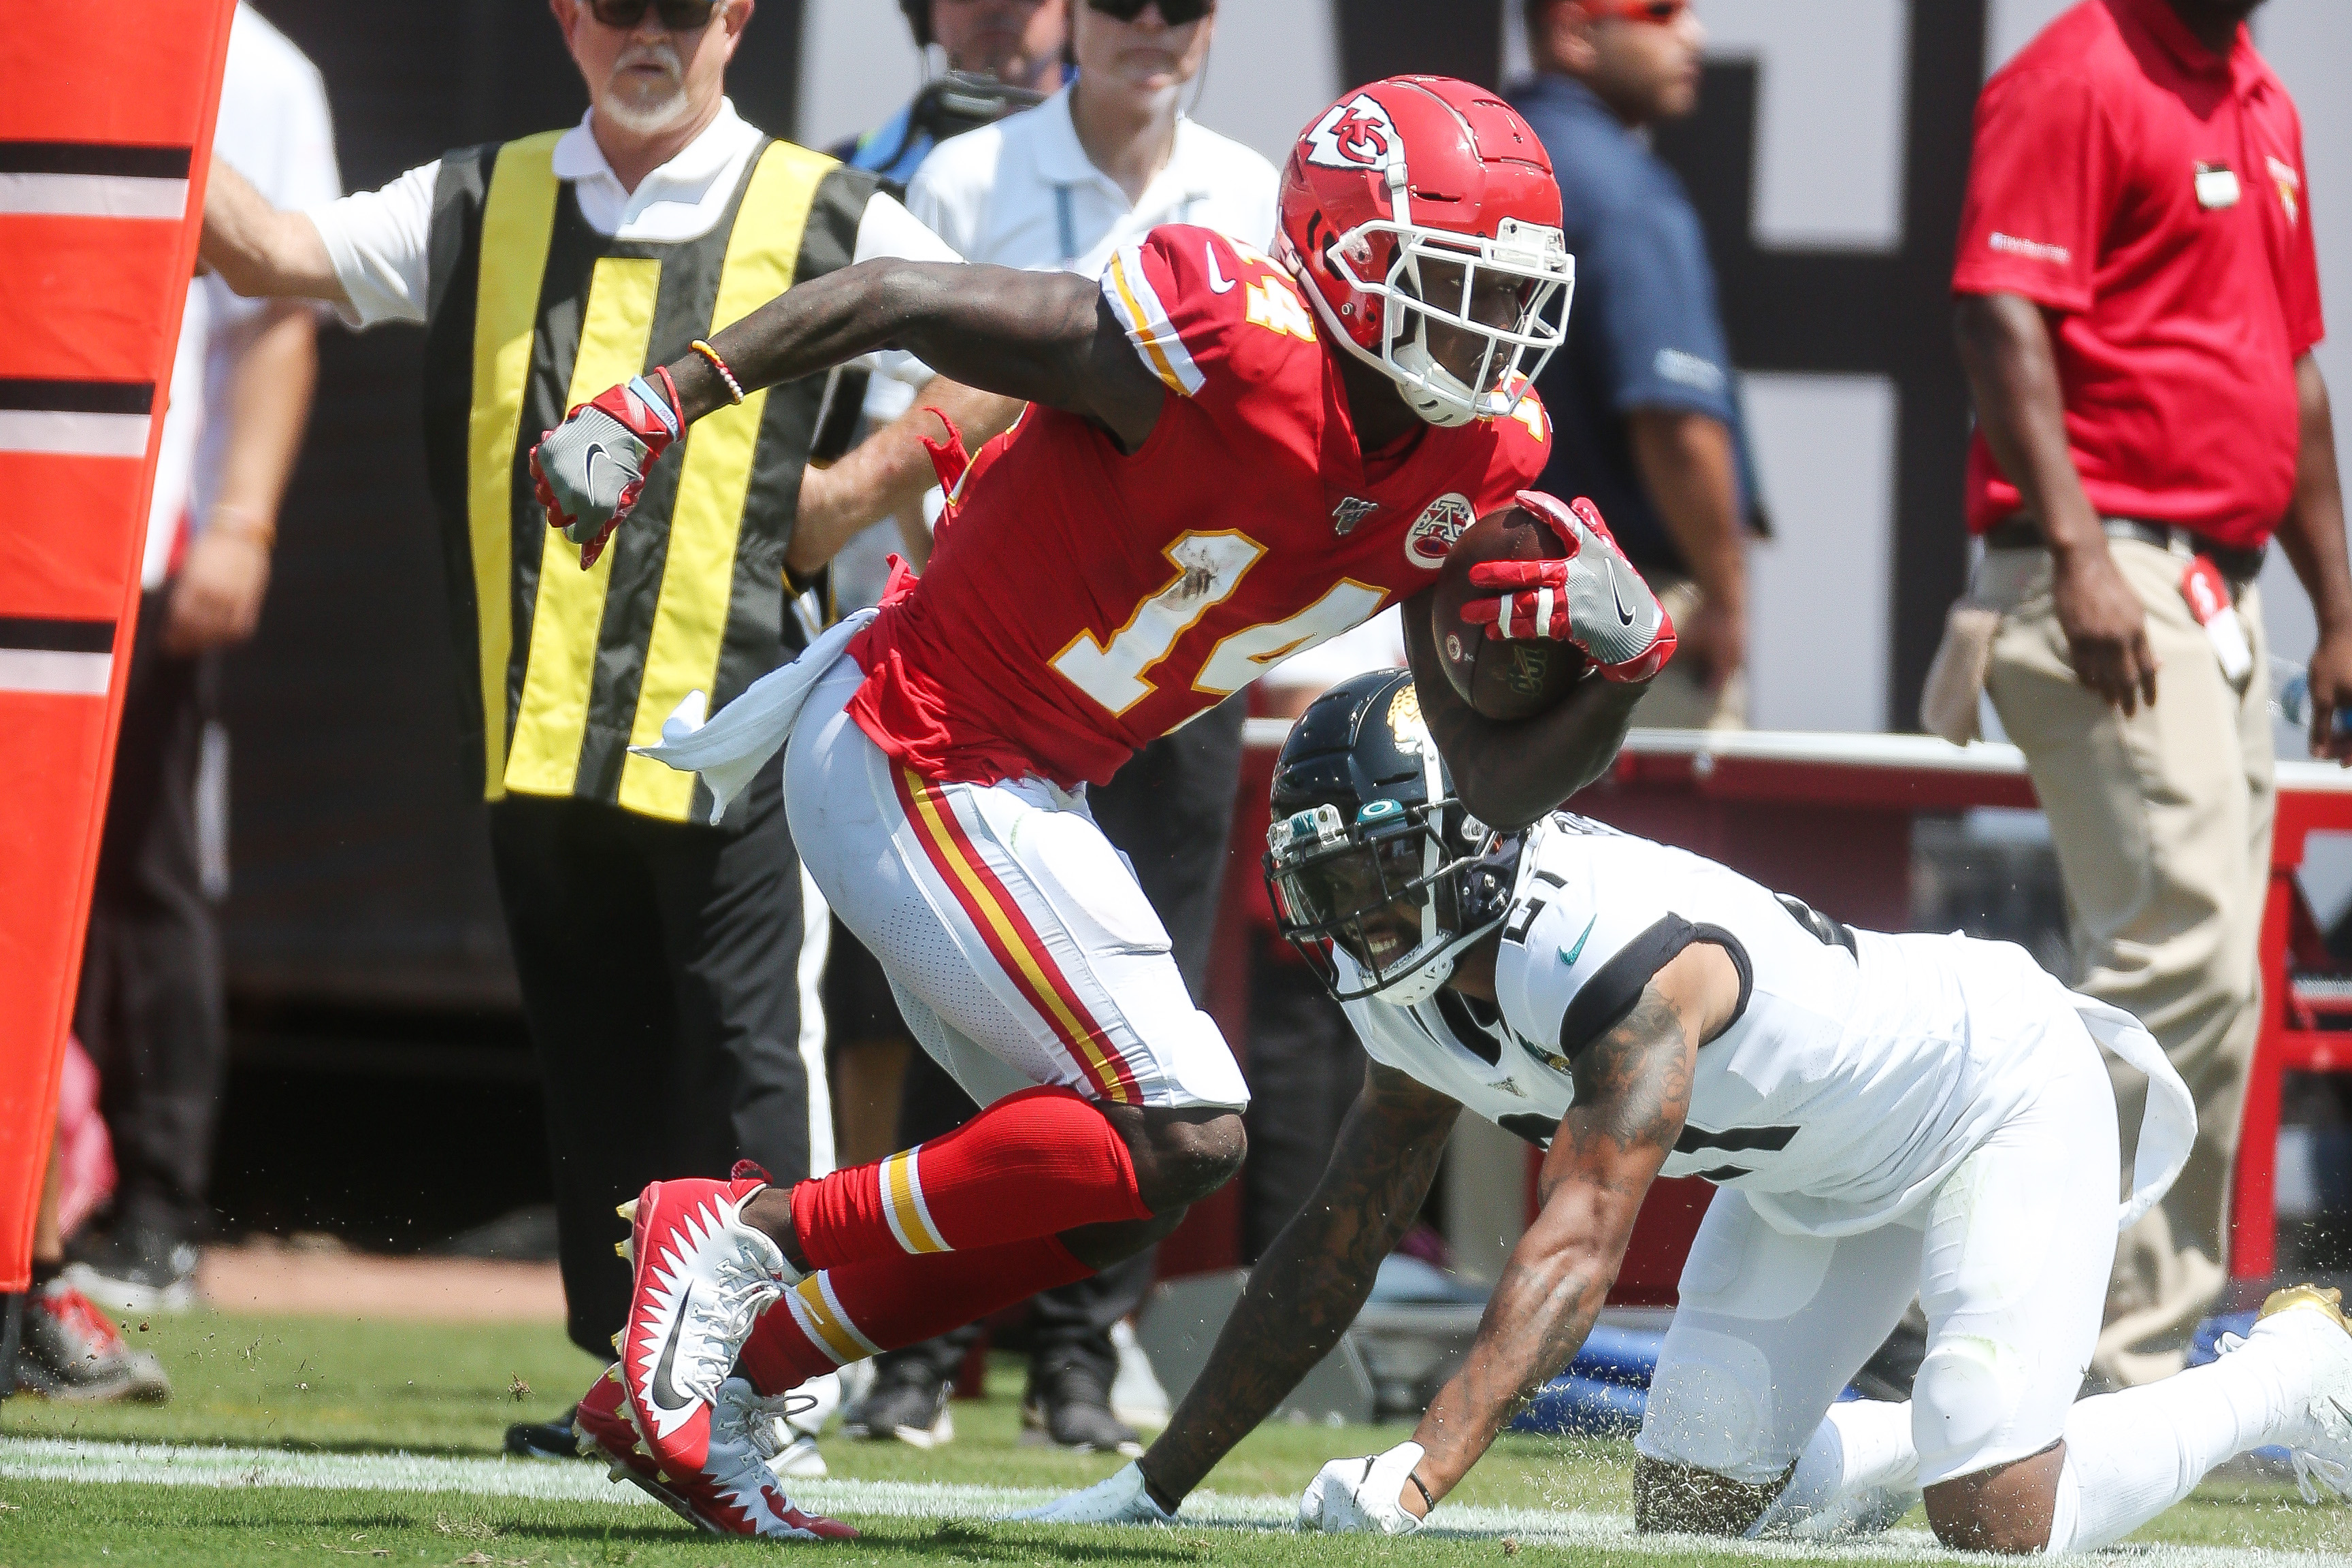 Wide receiver Sammy Watkins of the Kansas City Chiefs carries the ball during a NFL game against the Jacksonville Jaguars at TIAA Bank Field on September 10, 2019 in Jacksonville, Florida.